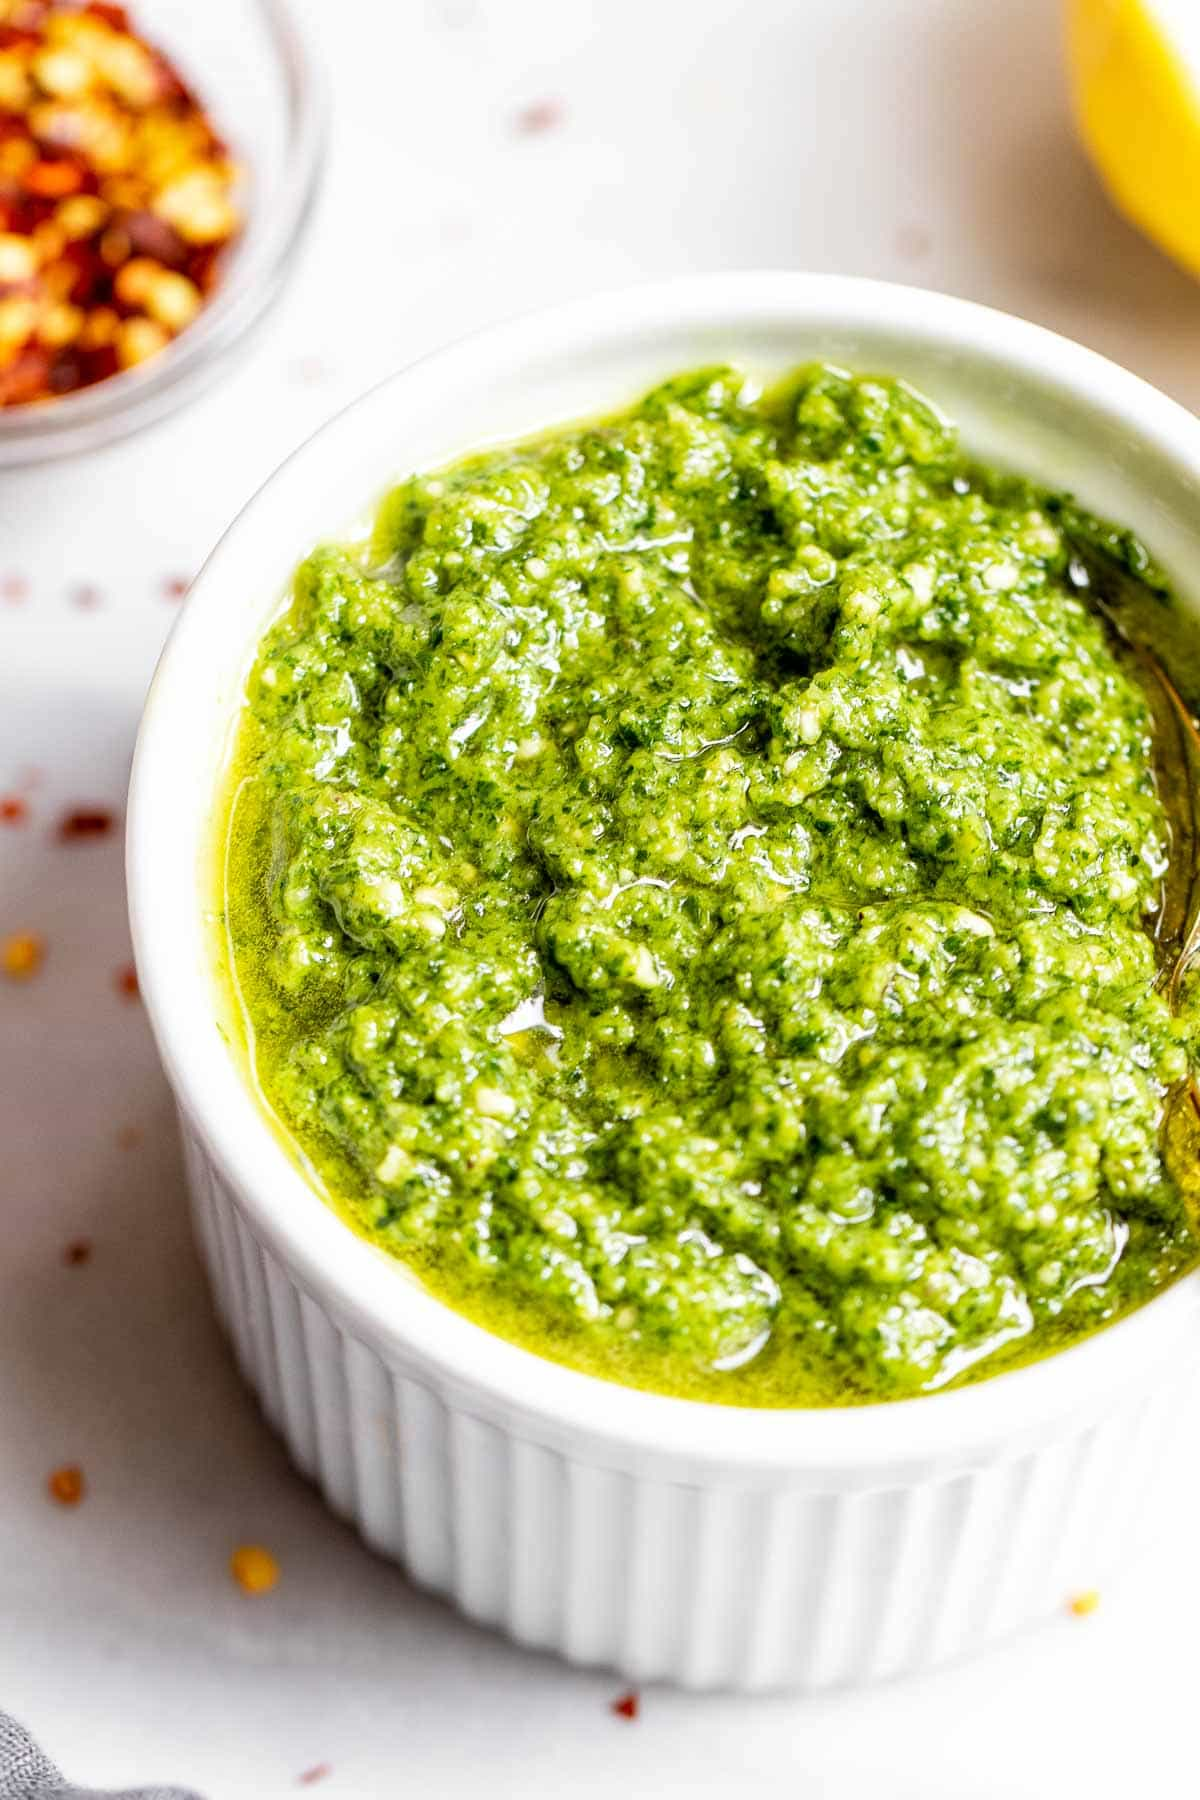 Up close image of pesto in a small white bowl.